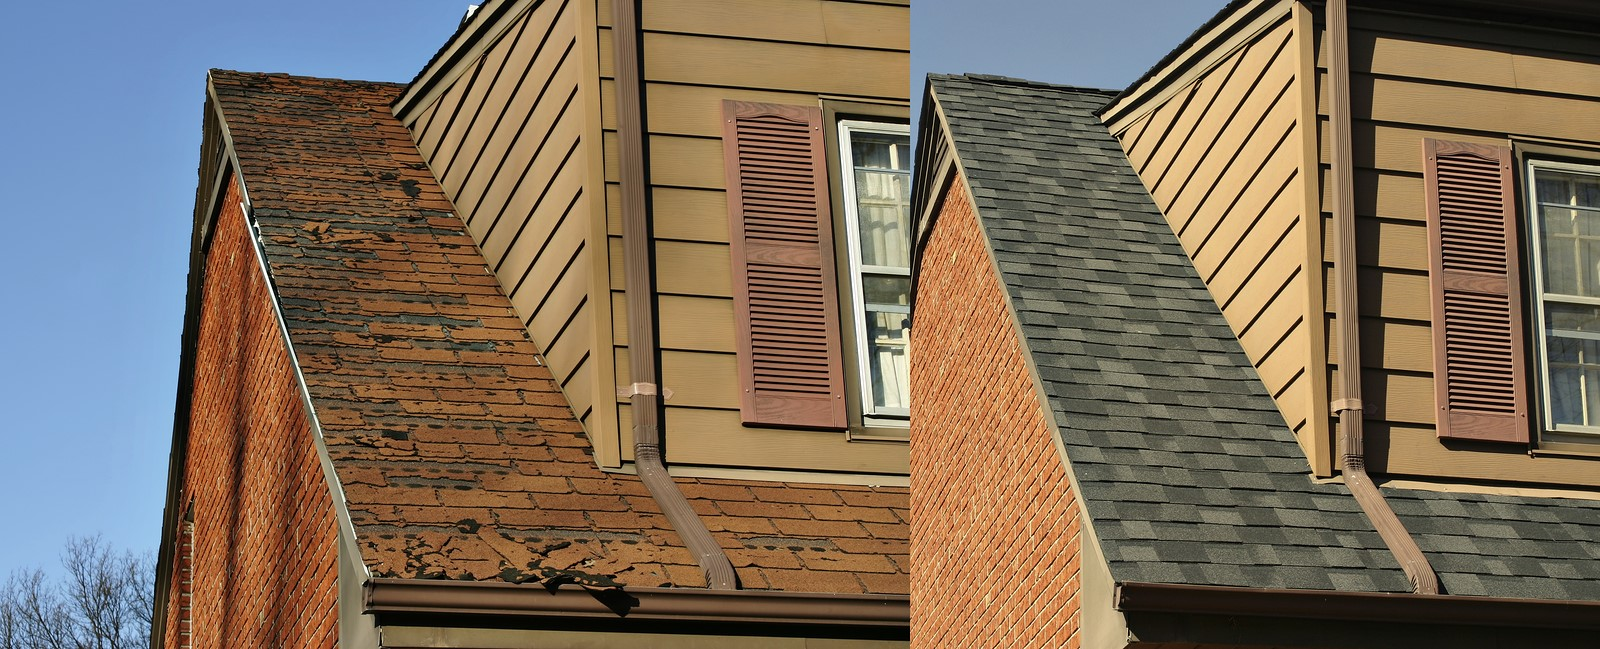 Things May Not Cross Your Mind When Re-roofing a Home